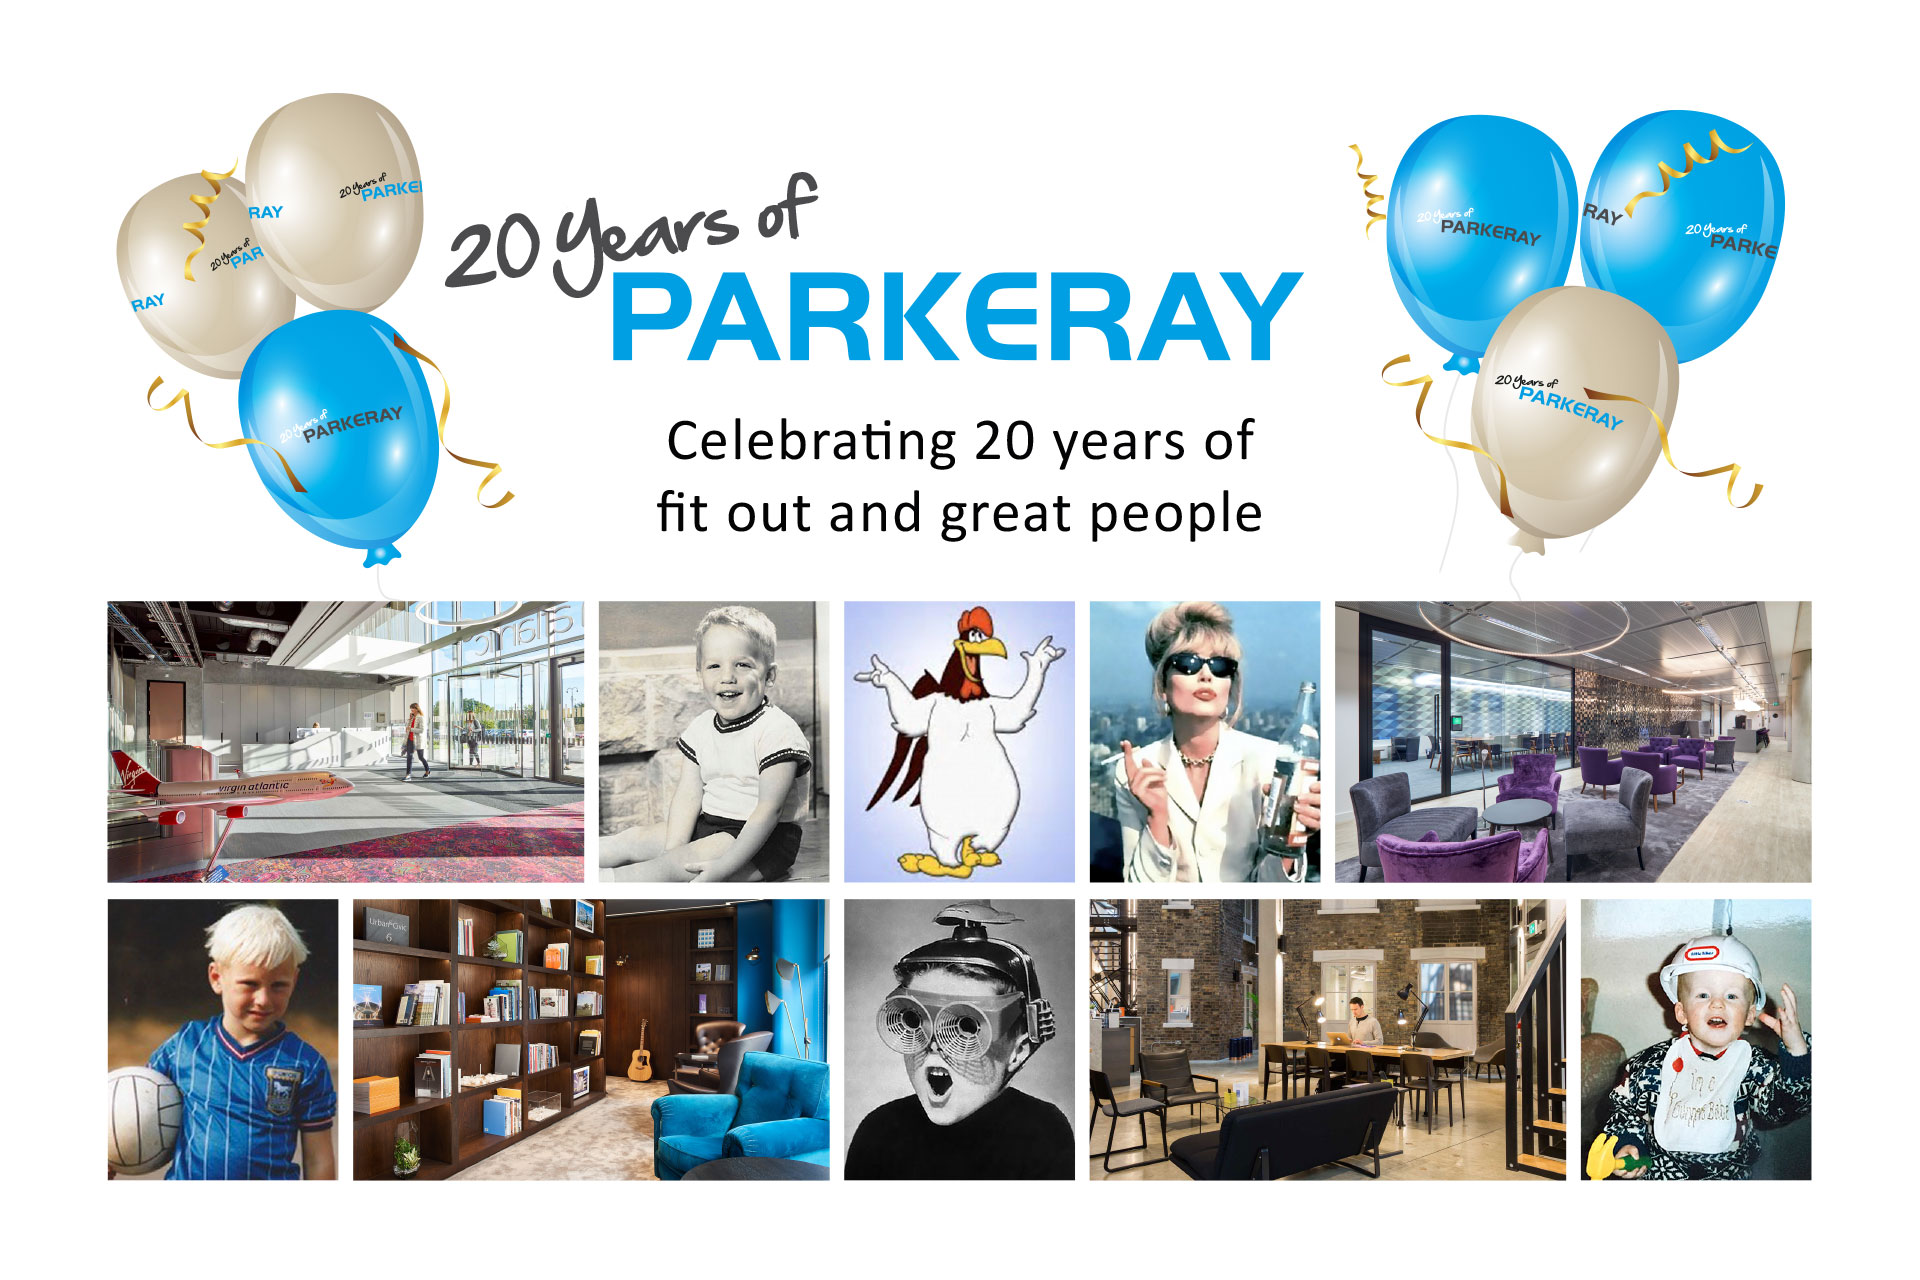 20 Years of Parkeray